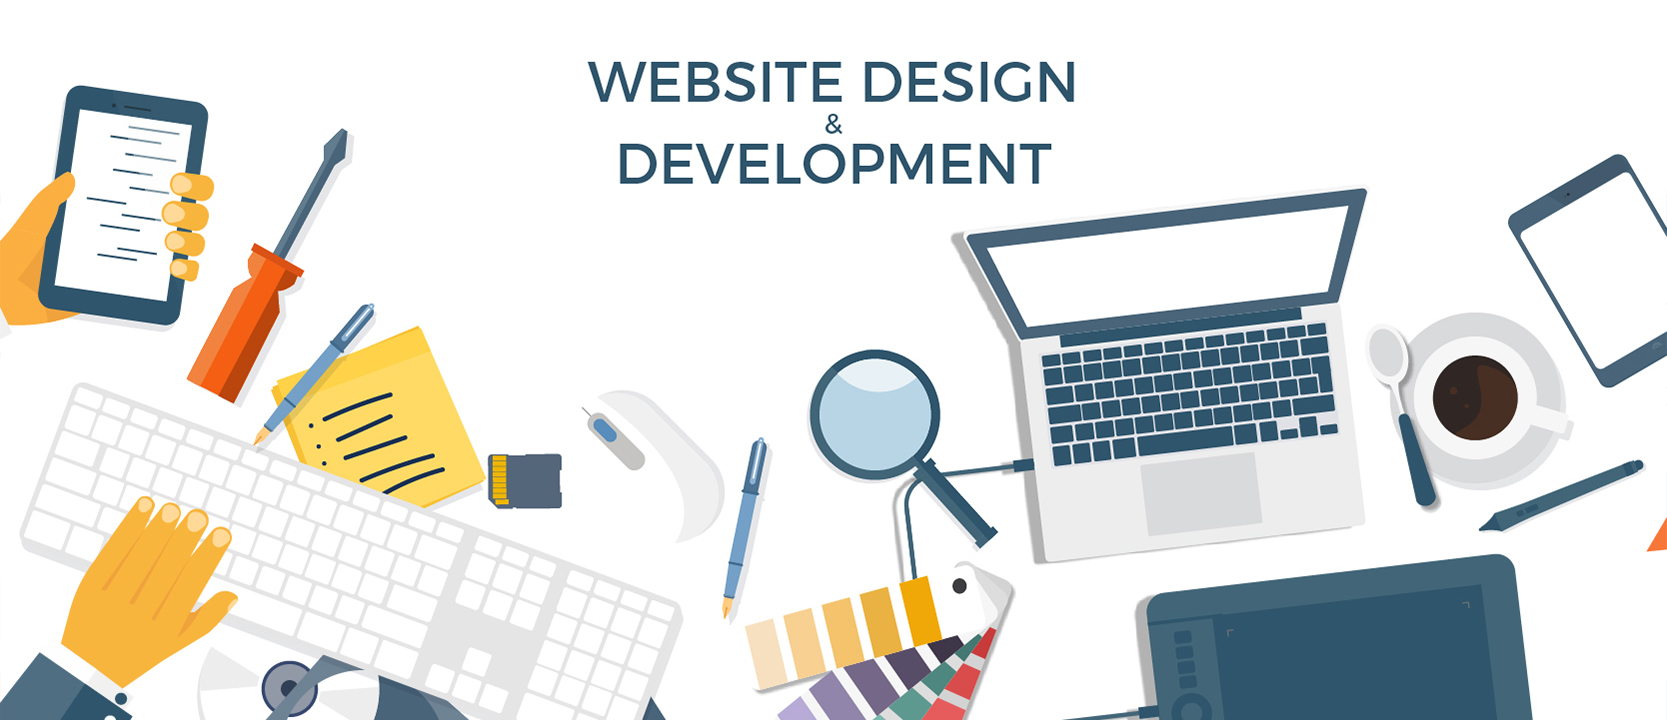 Site Galleria - Web Design Company in Rajajinagar Bangalore